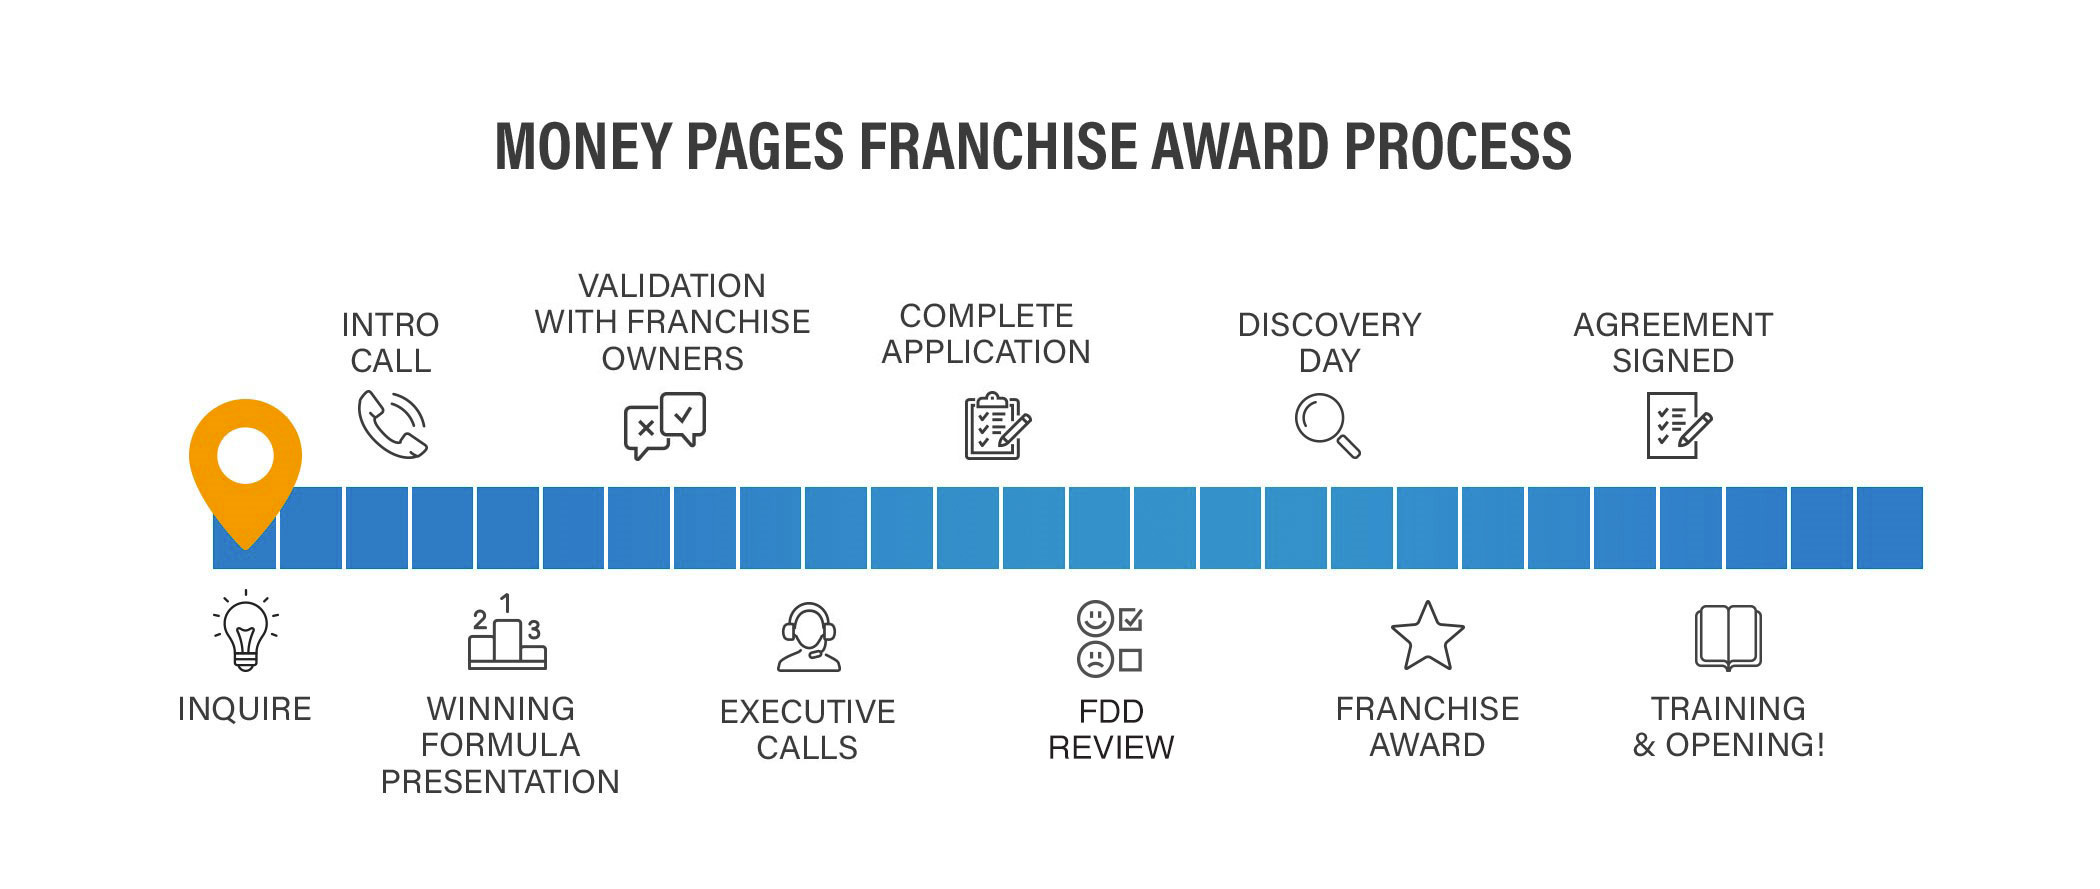 A graphical timeline of the Franchise Process Outline. The following steps are outlined: Step 1: Get to Know Us. Step 2: Learn More About Money Pages. Step 3: Speak with Our Franchise Owners. Step 4: Read our FDD. Step 5: Meet Our Team at Discovery Day. Step 6: Complete Your Research. Step 7: We Complete Our Research. Step 8: Franchise Award. Step 9: Market Launch.